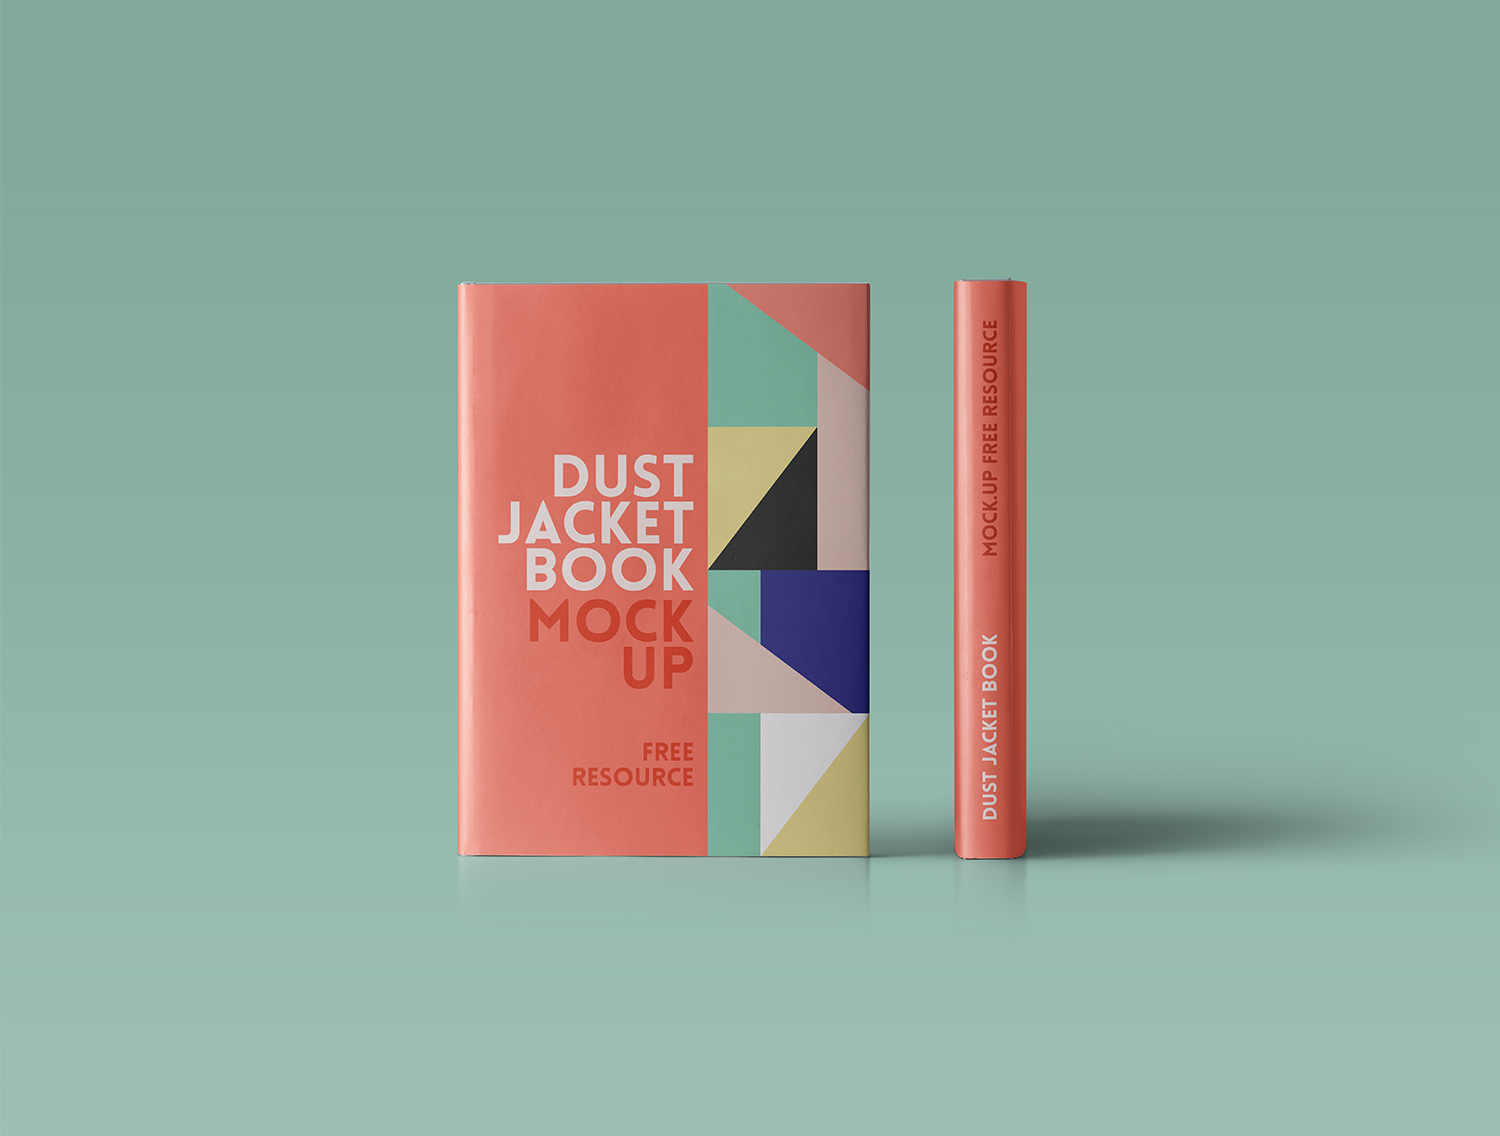 Standing Hardcover Book Mockup Dust Jacket